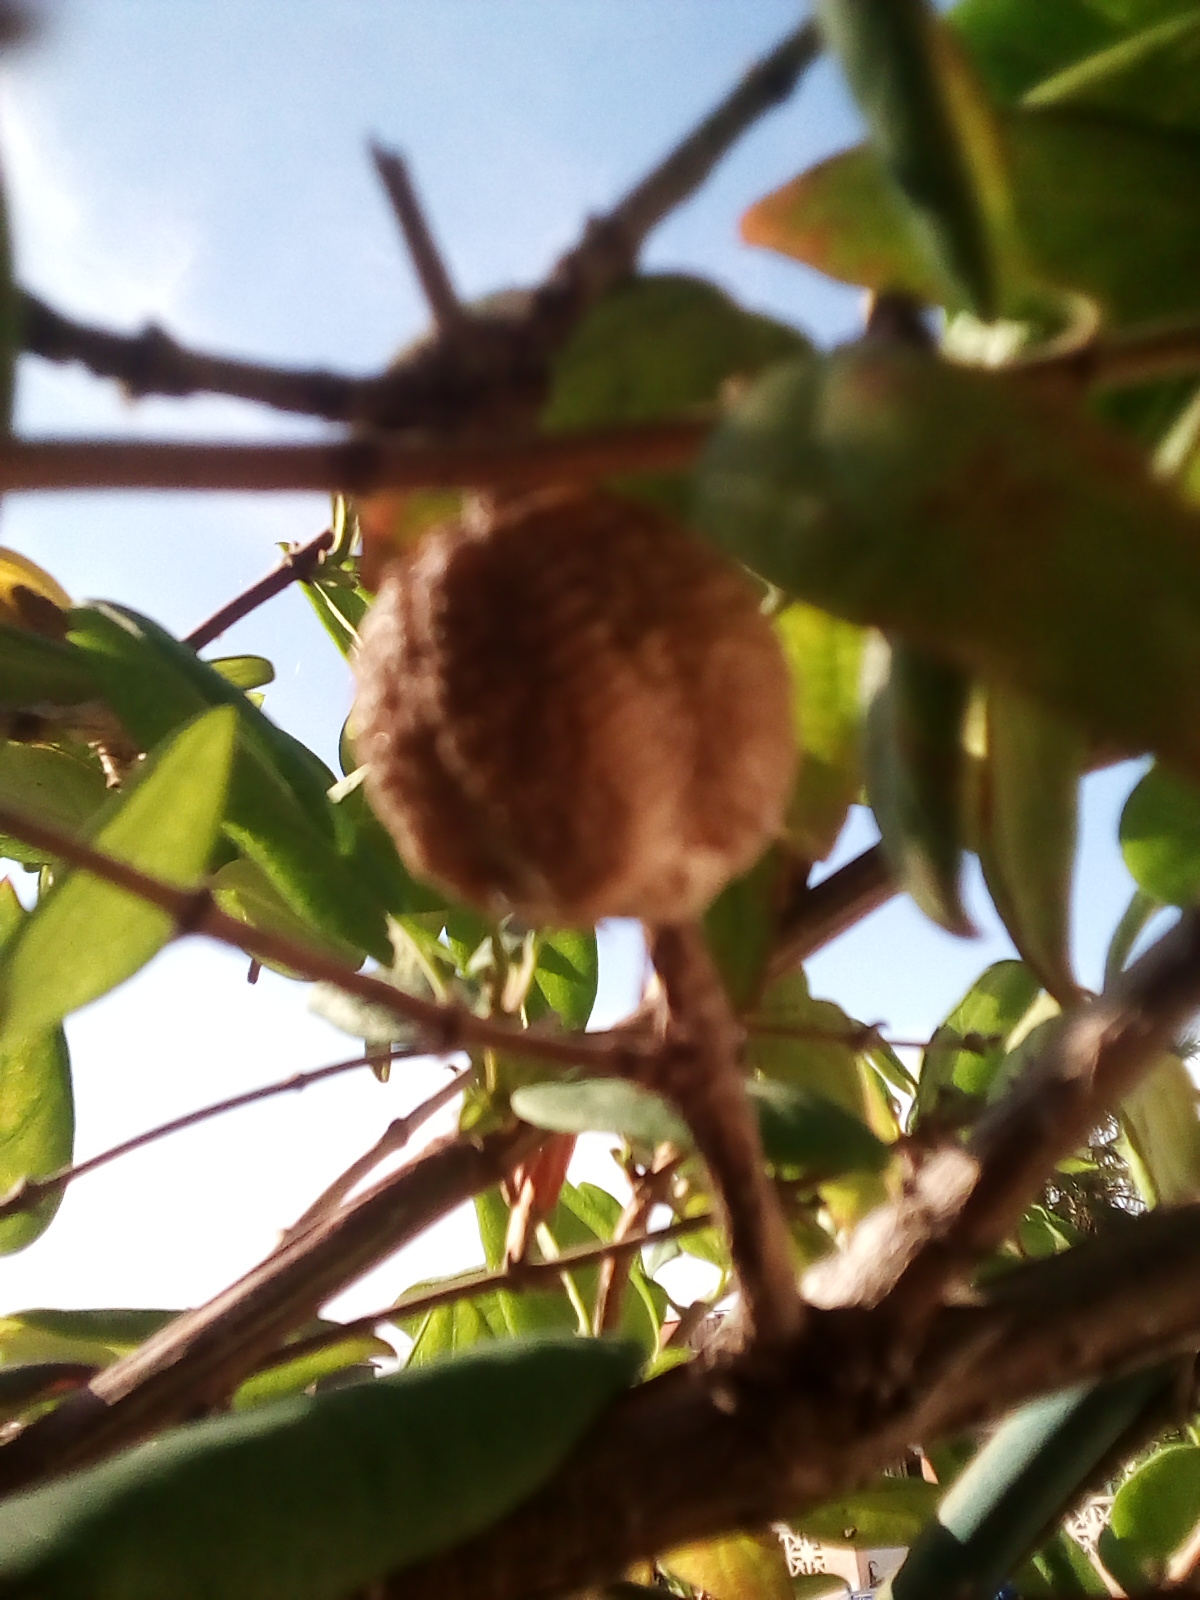 Praying mantis egg sac.